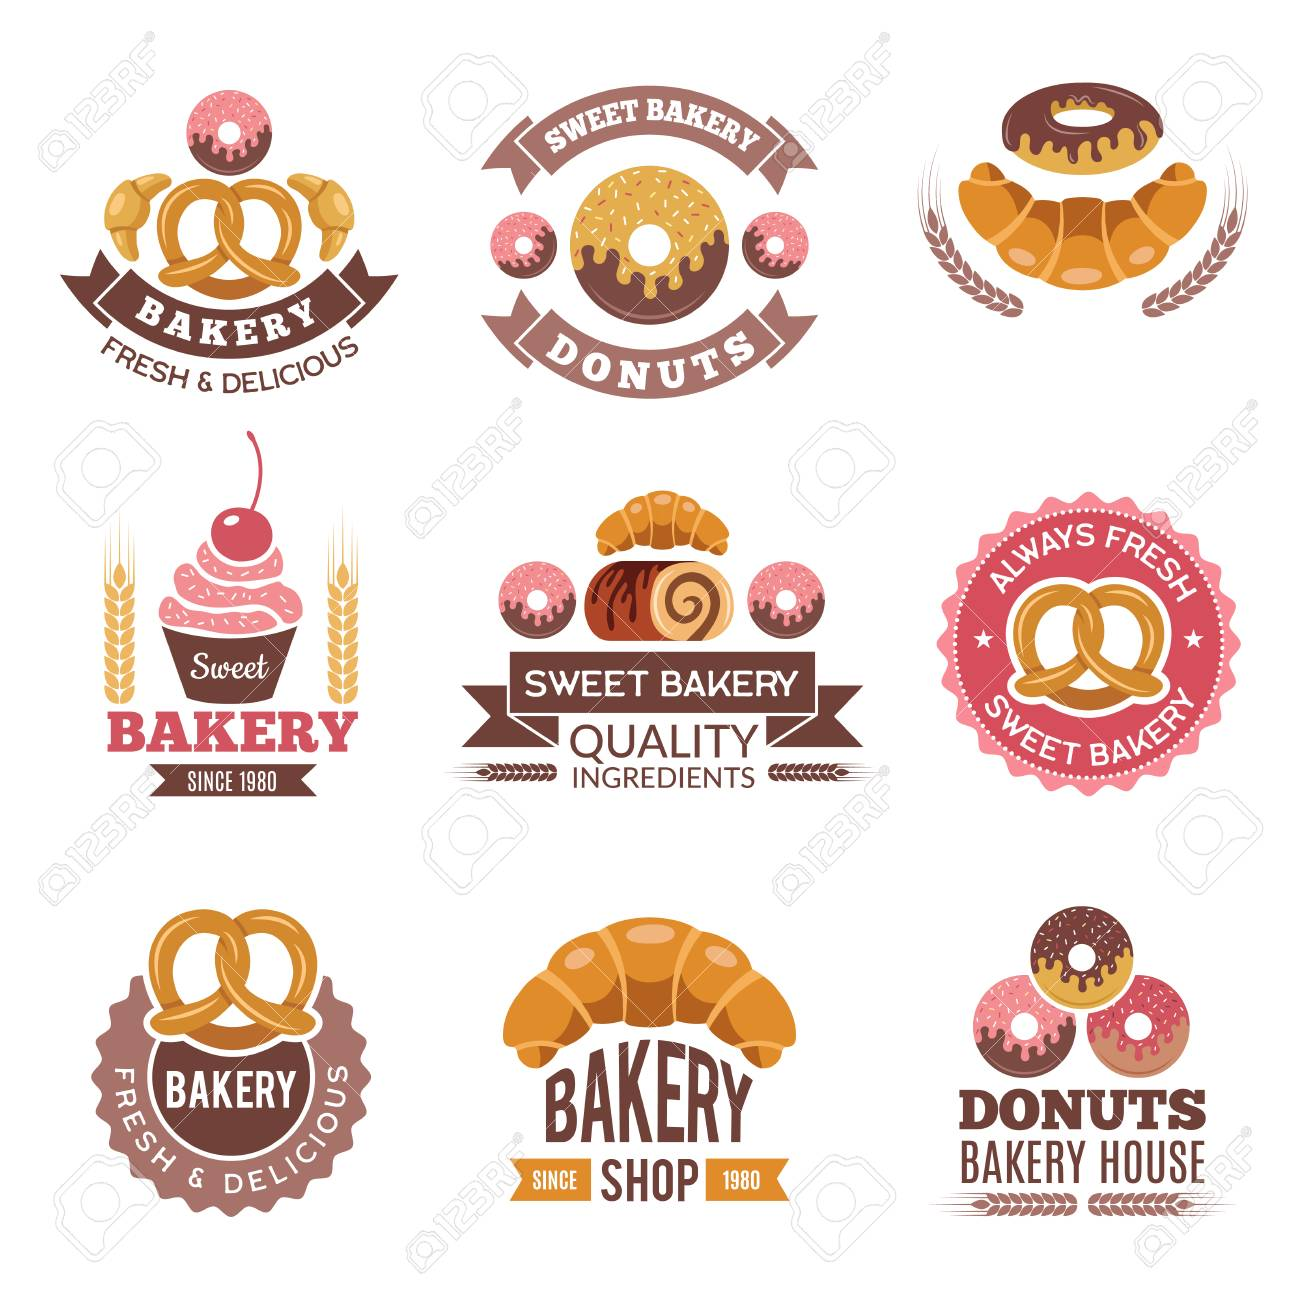 Bakery Shop Logo Donuts Cookies Fresh Food Cupcakes And Bread